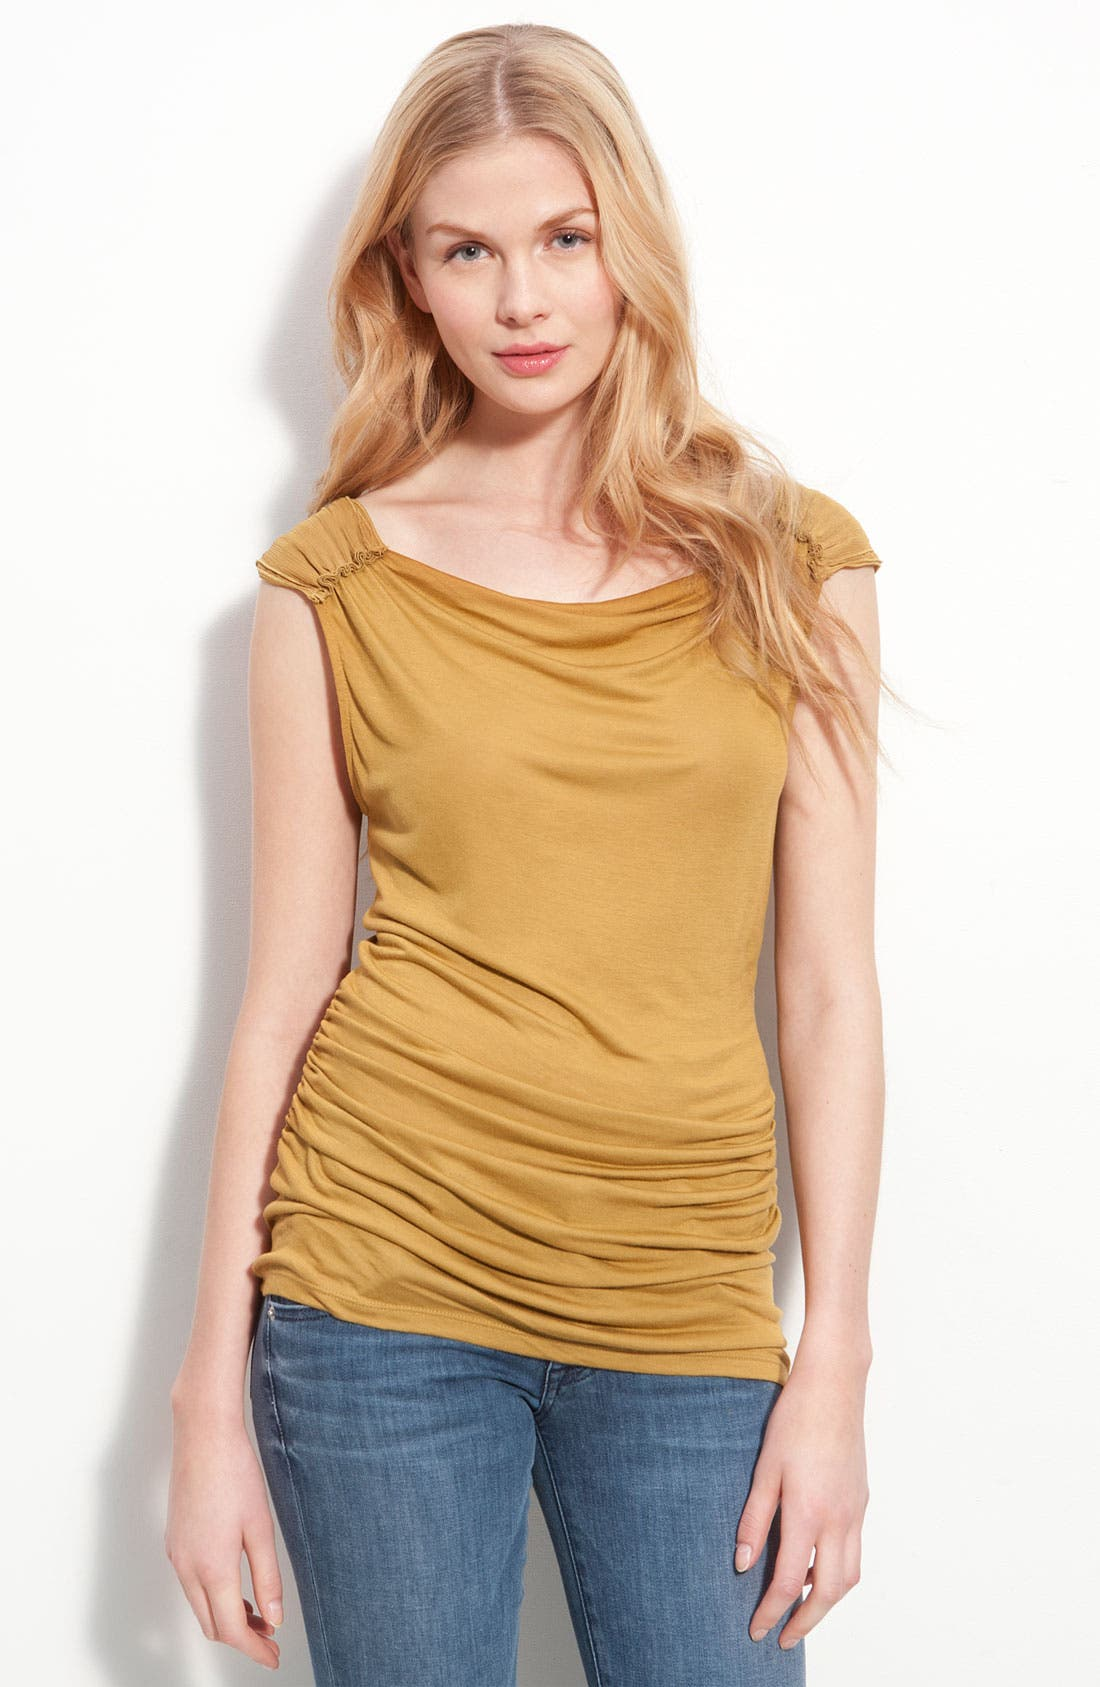 Alternate Image 1 Selected - T Tahari 'Ava' Ruched Sleeveless Top (Petite)